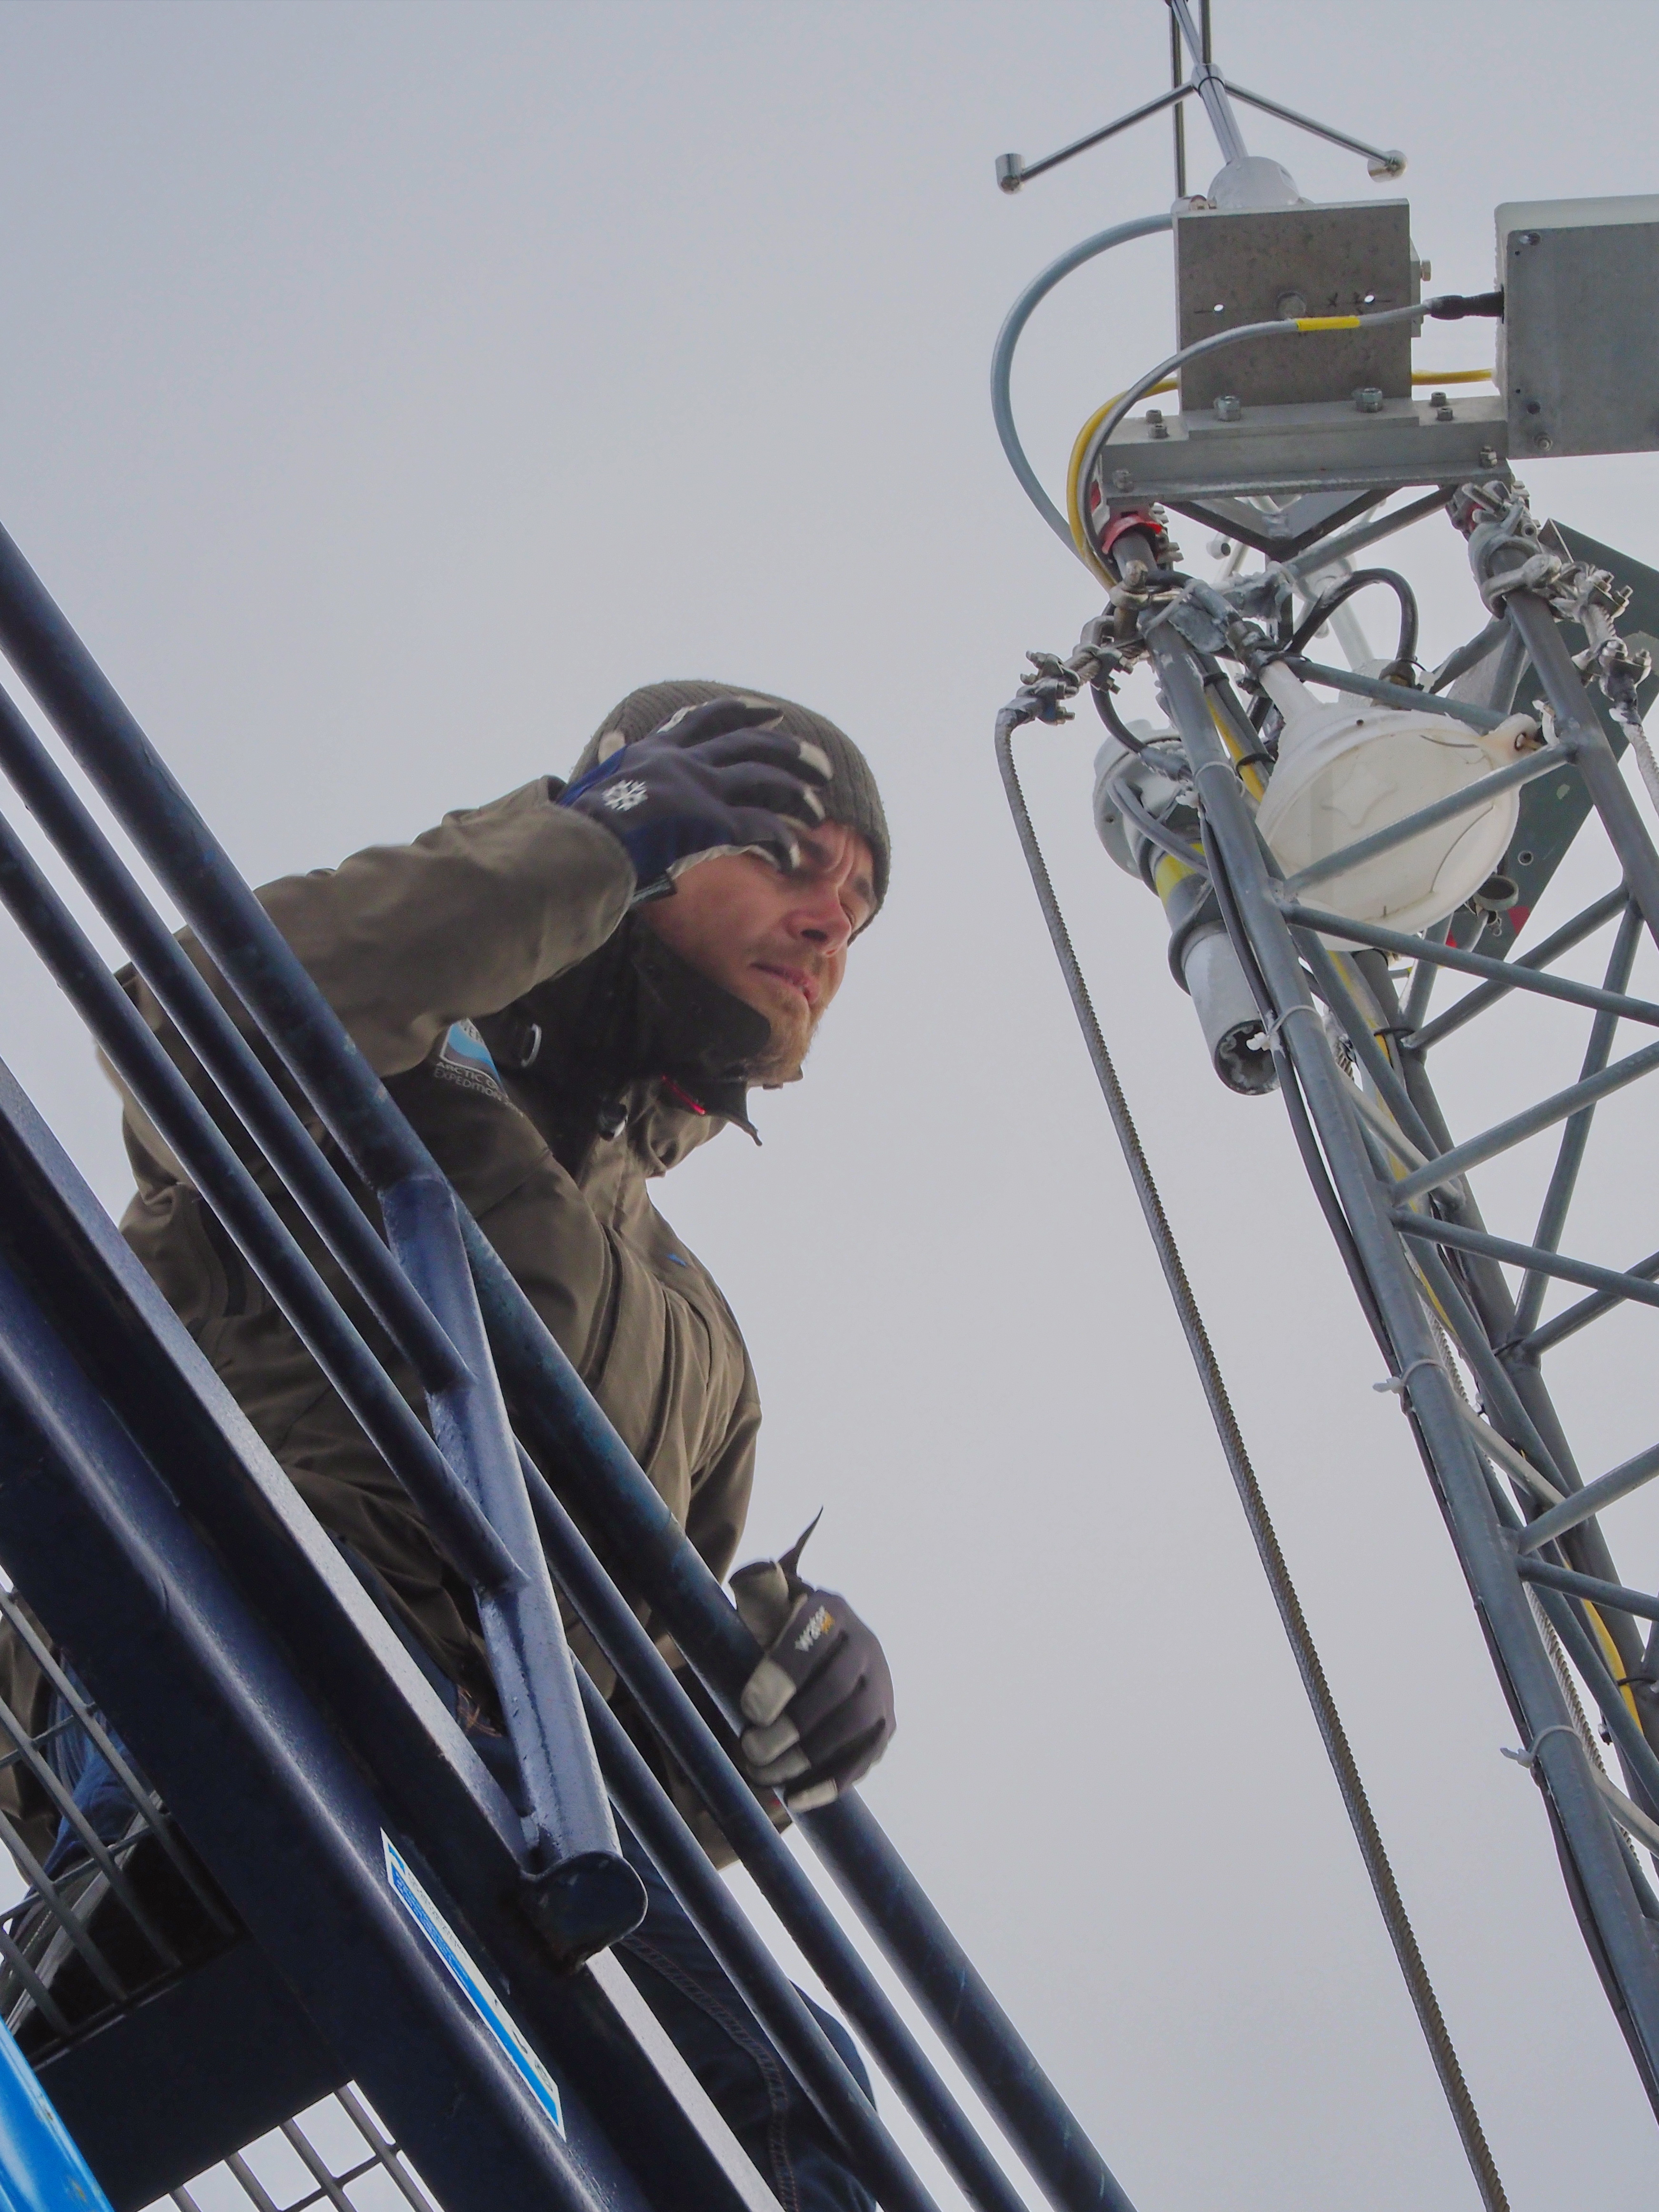 John Prytherch attending to the instruments at top of the mast using the lift mounted behind the mast. Photo: Michael Tjernström